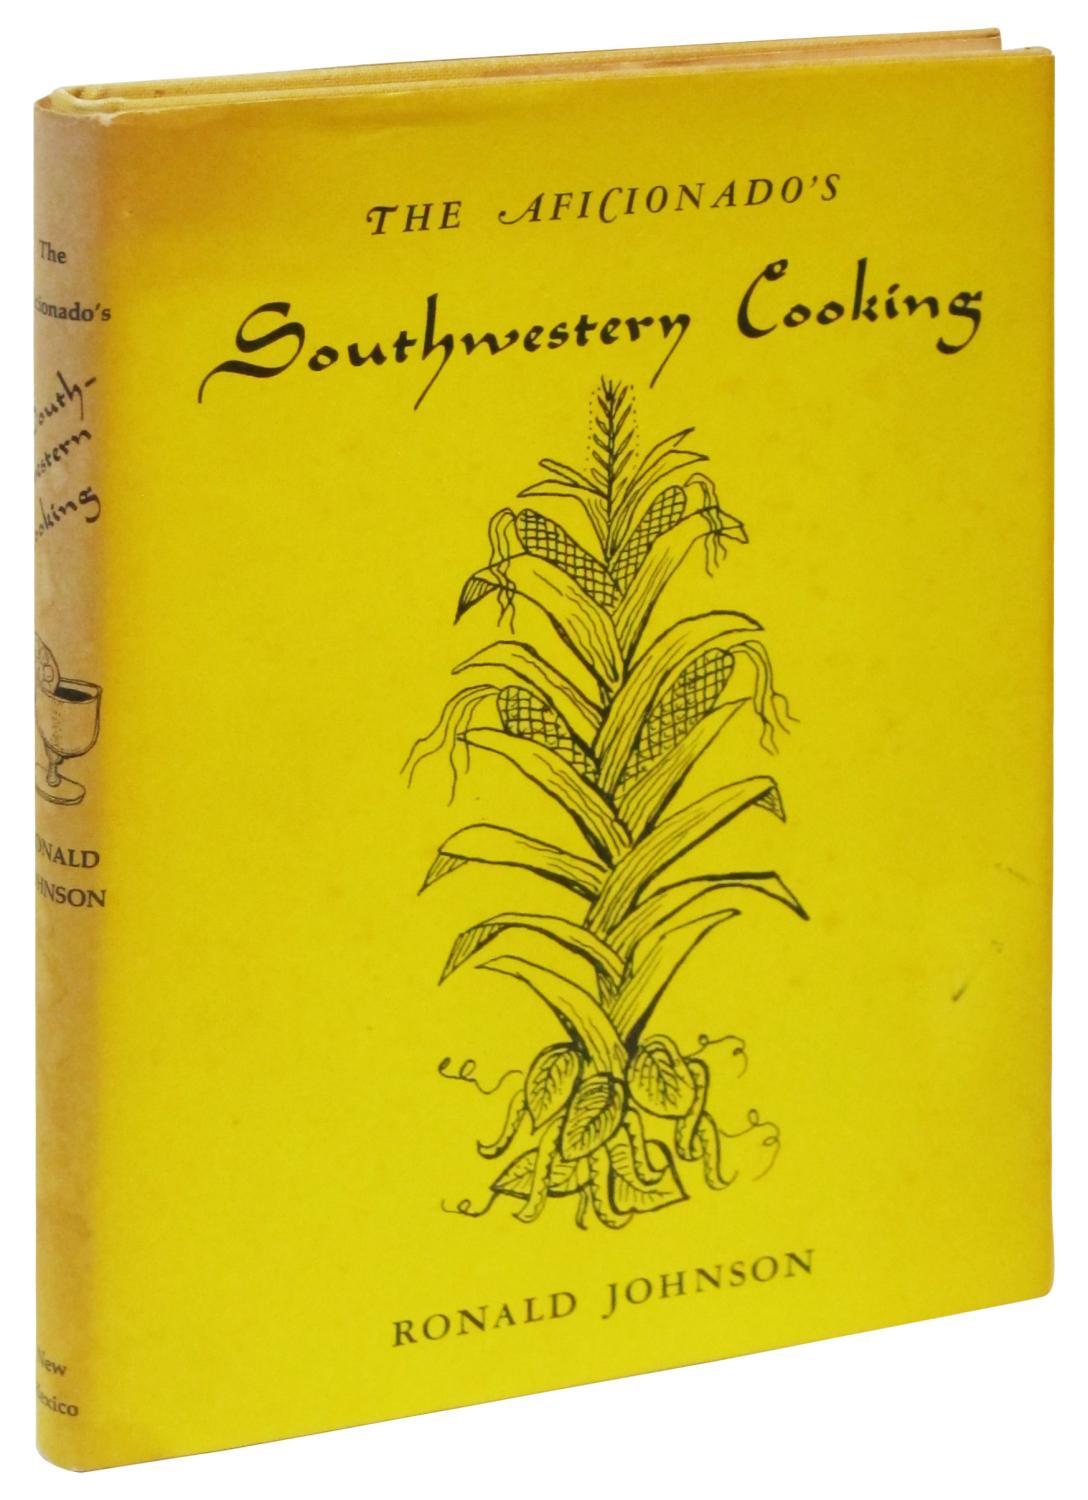 The Aficionado's Southwestern Cooking: Johnson, Ronald